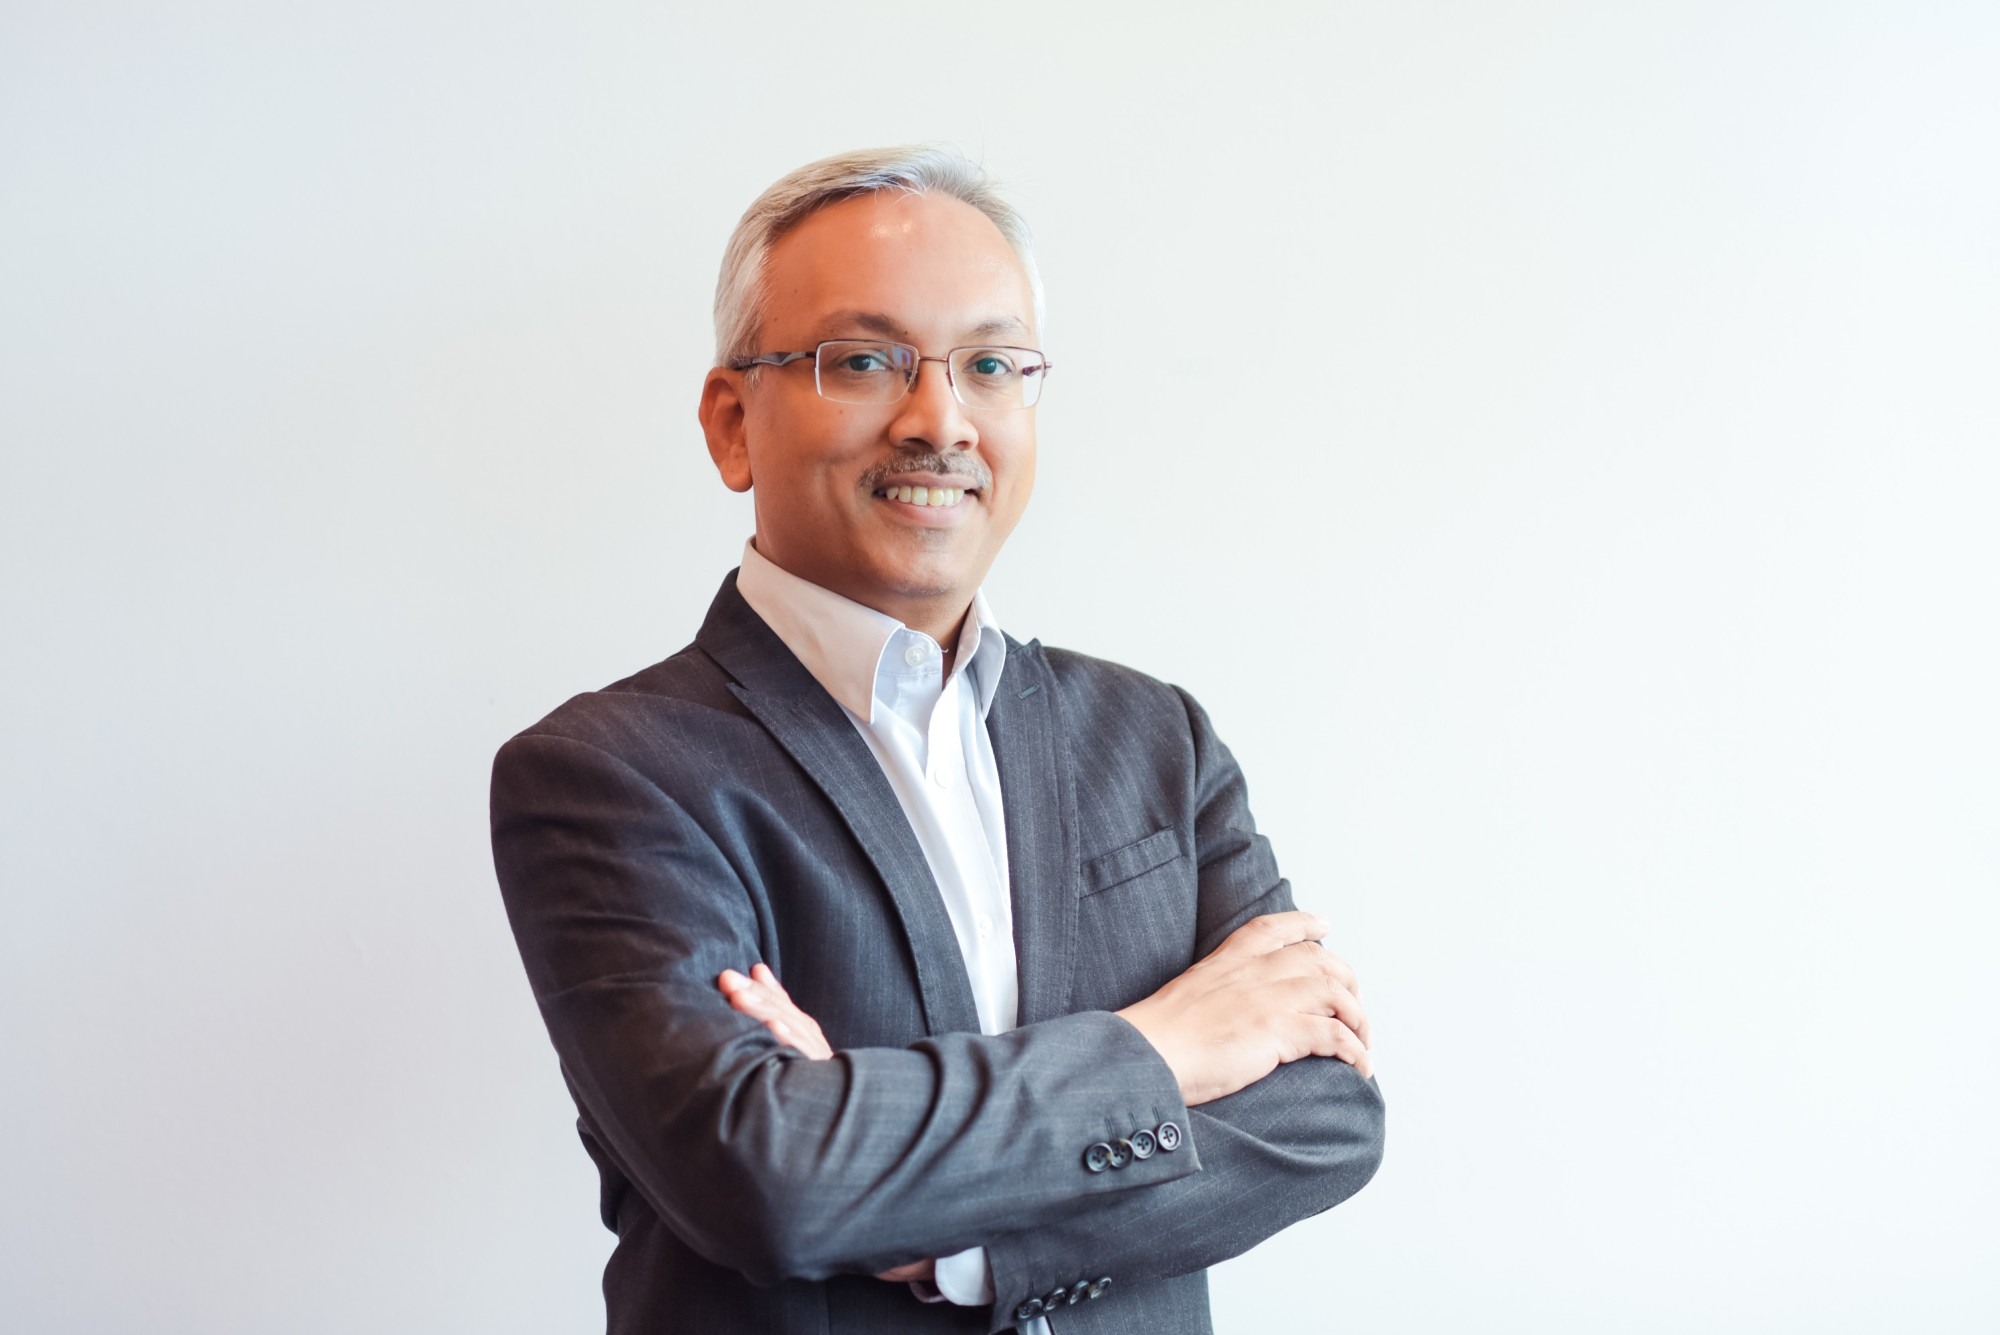 Experian Asia Pacific Appoints Mohan Jayaraman as Managing Director Southeast Asia & Regional Innovation